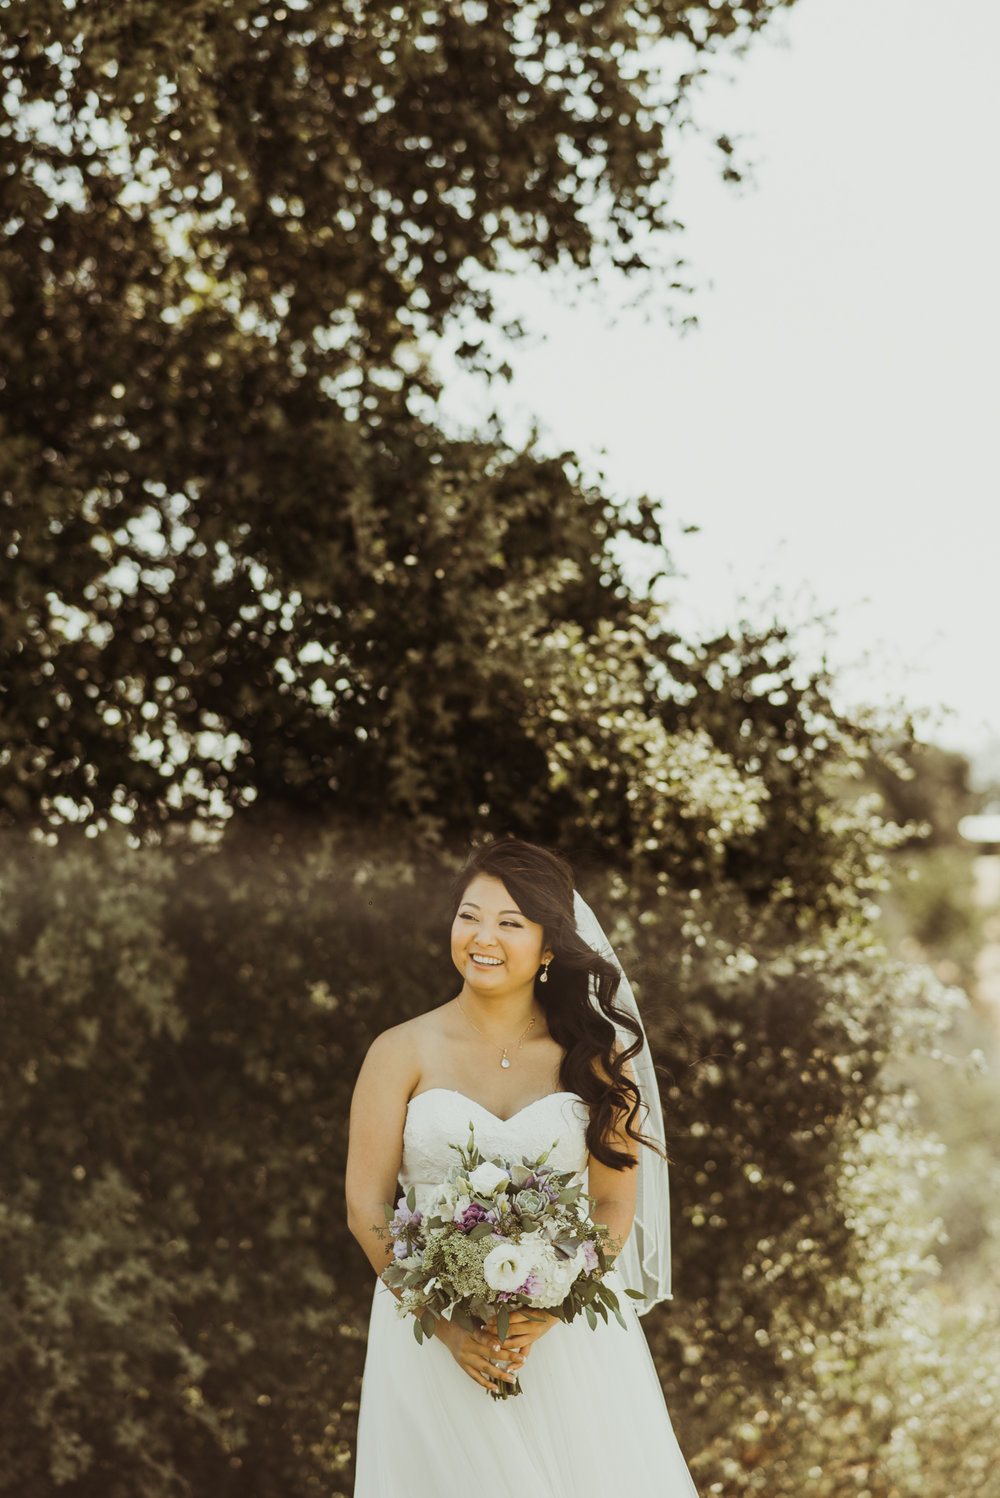 ©Isaiah + Taylor Photography - Sacred Mountain Ranch Wedding, Julian CA-85.jpg